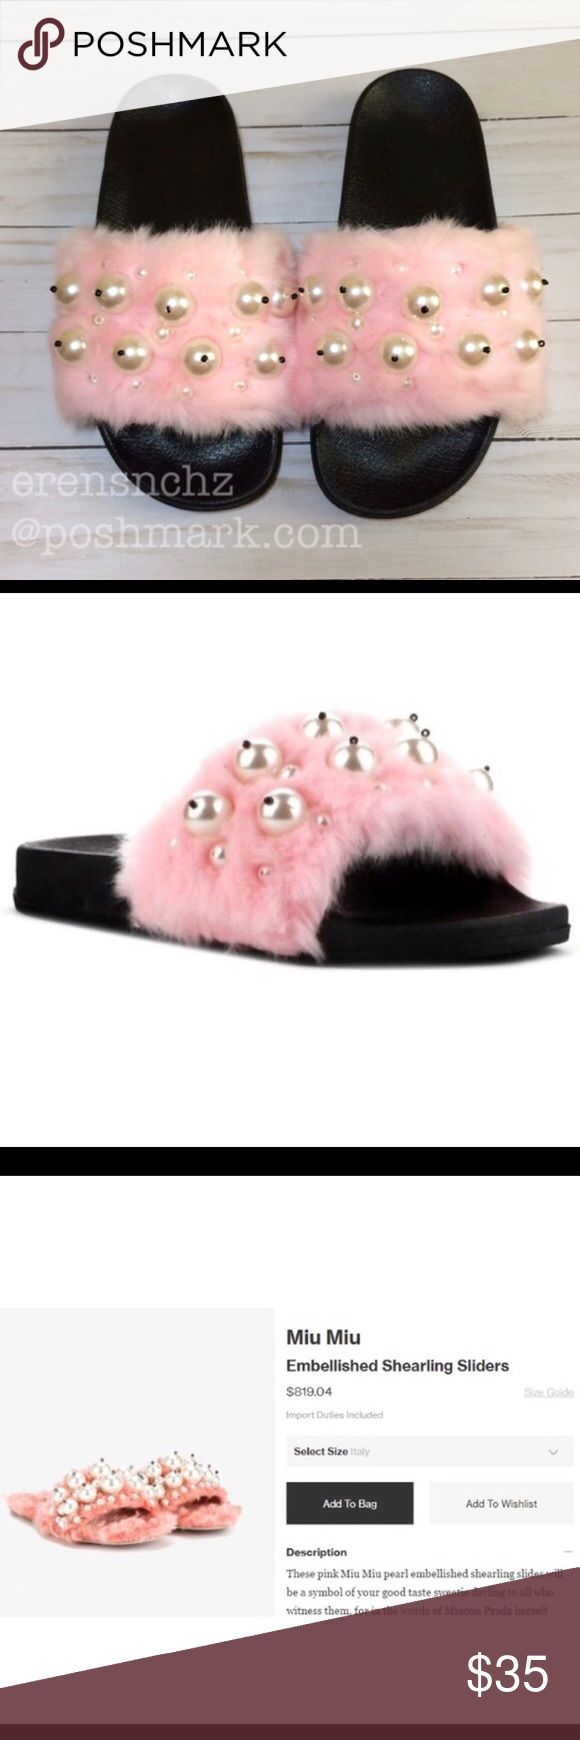 Pink fur & pearl slide sandal! 7 ✨✨✨ Similar to the Miu Miu embellished Sandal that retails for $800+ ✨  Ready to ship next day! 📦📦📦 Offers welcome! 💕 No trades 🚫 Absolutely NO off Posh transactions 🙅🏽 20% off all bundles of two or more items 💸💸💸  Open Toe Faux Fur Pearl Sandals Heel Height : 1-1.75 Inch Style : Casual.       Similar styles seen on: Kim Kardashian Kylie Jenner Khloe Kardashian Kourtney Kardashian Kendall Jenner Karrueche Tran Chrissy Teigen India Love Shoes Sandals